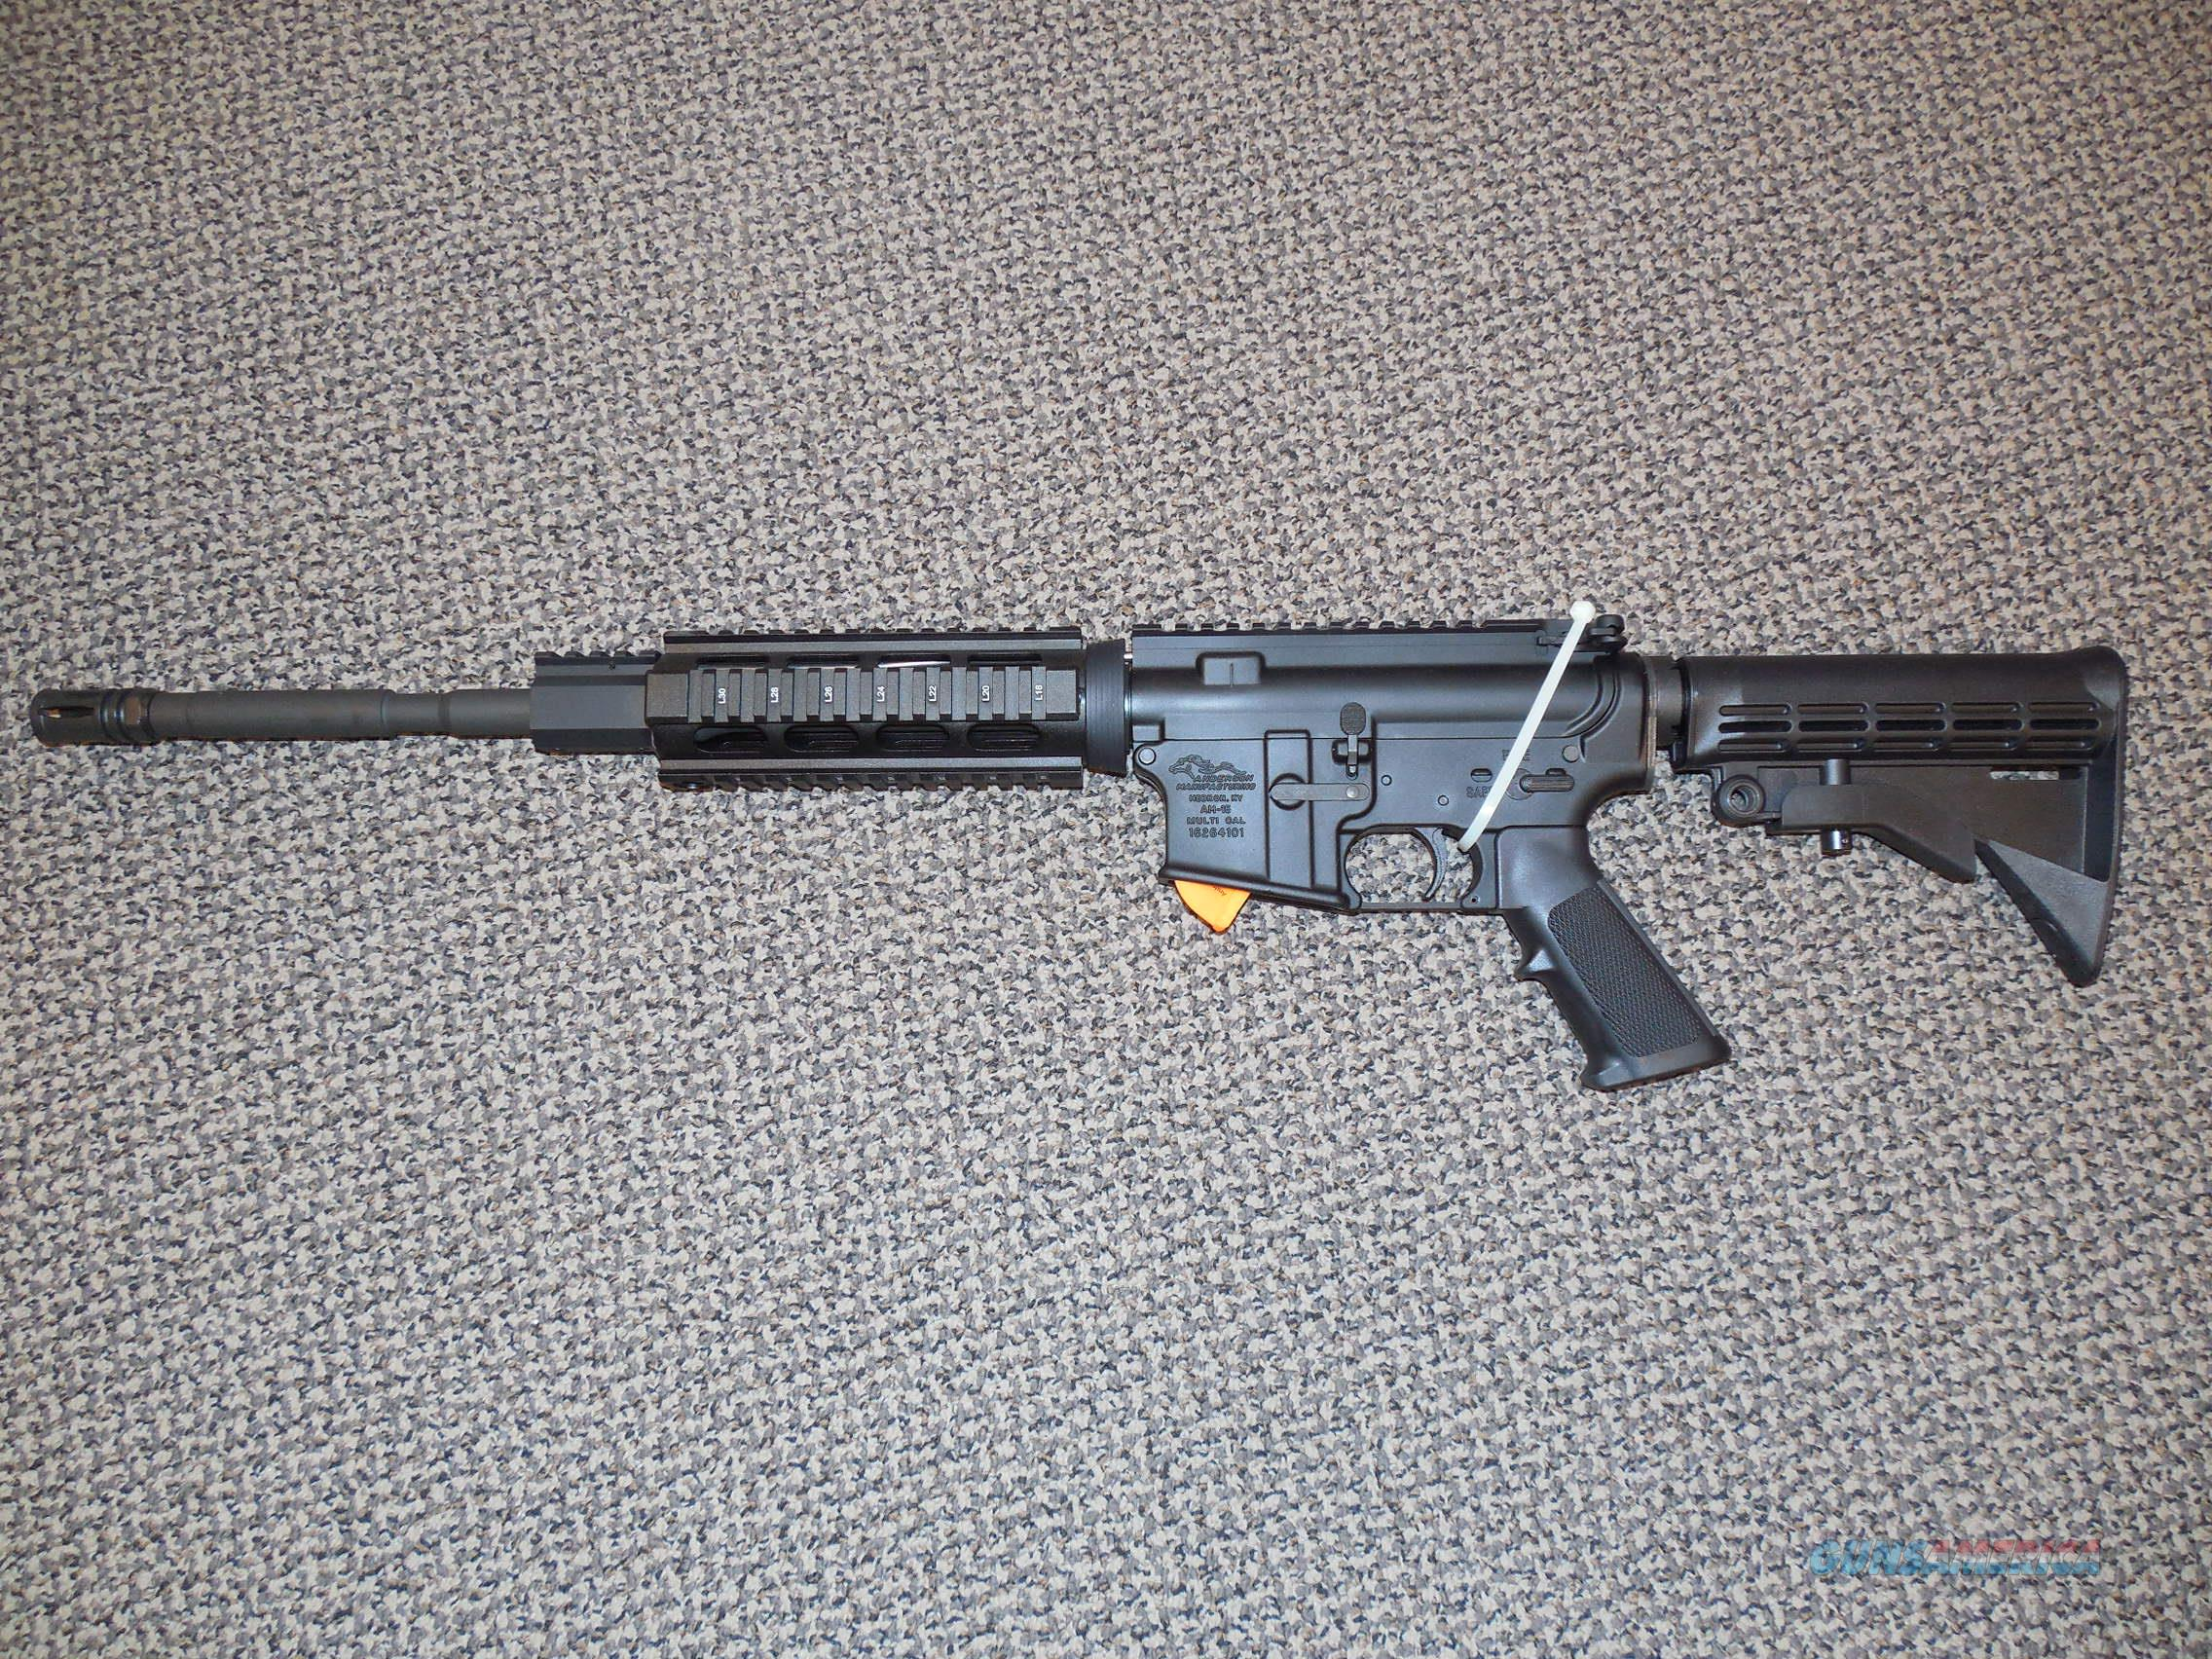 ANDERSON AM-15 TACTICAL CARBINE WITH QUAD RAIL  Guns > Rifles > AR-15 Rifles - Small Manufacturers > Complete Rifle